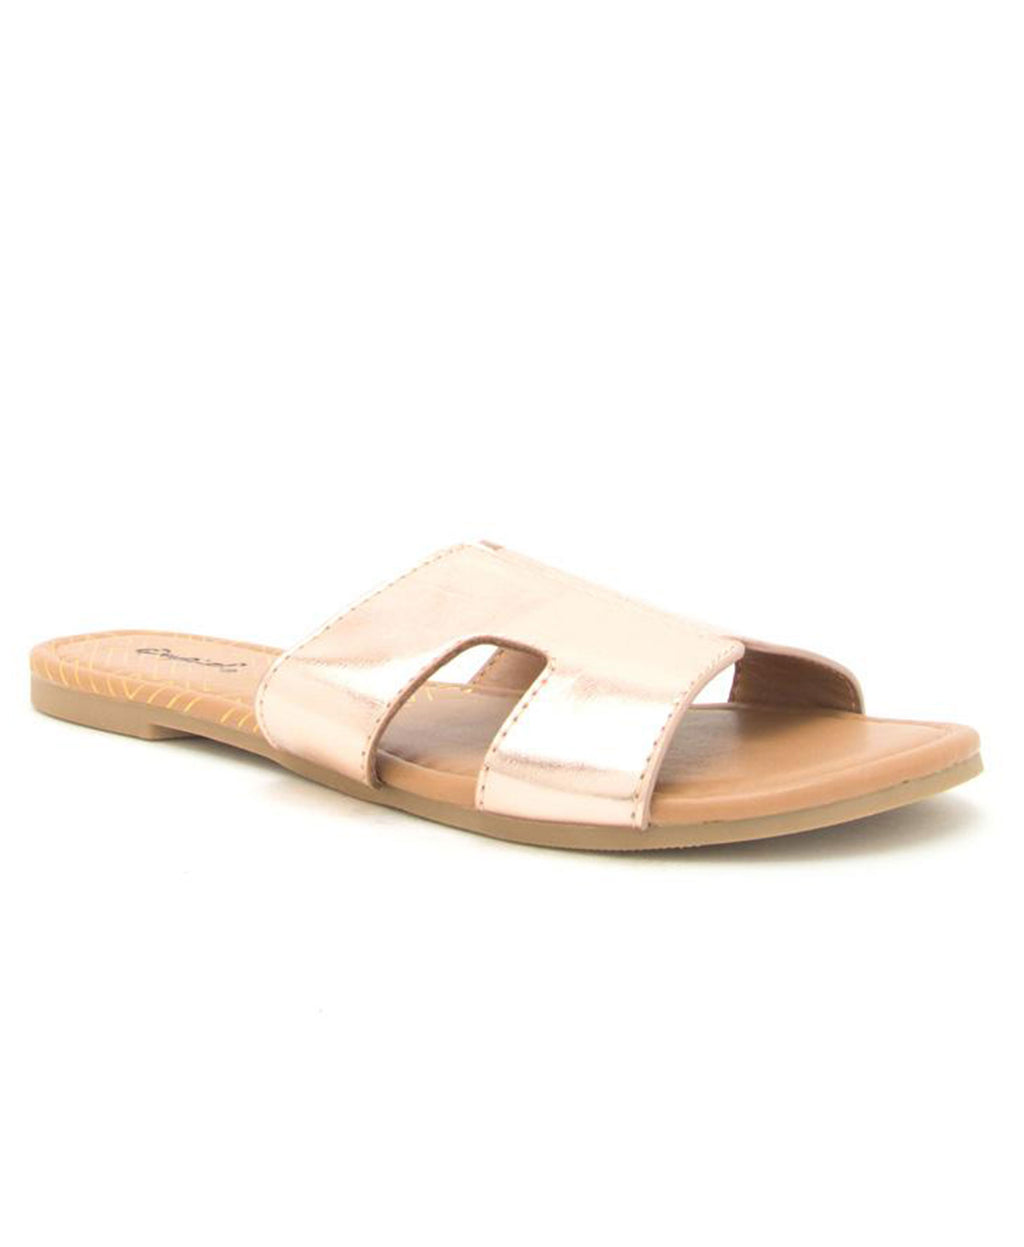 Archer Slide Sandal - Rose Gold